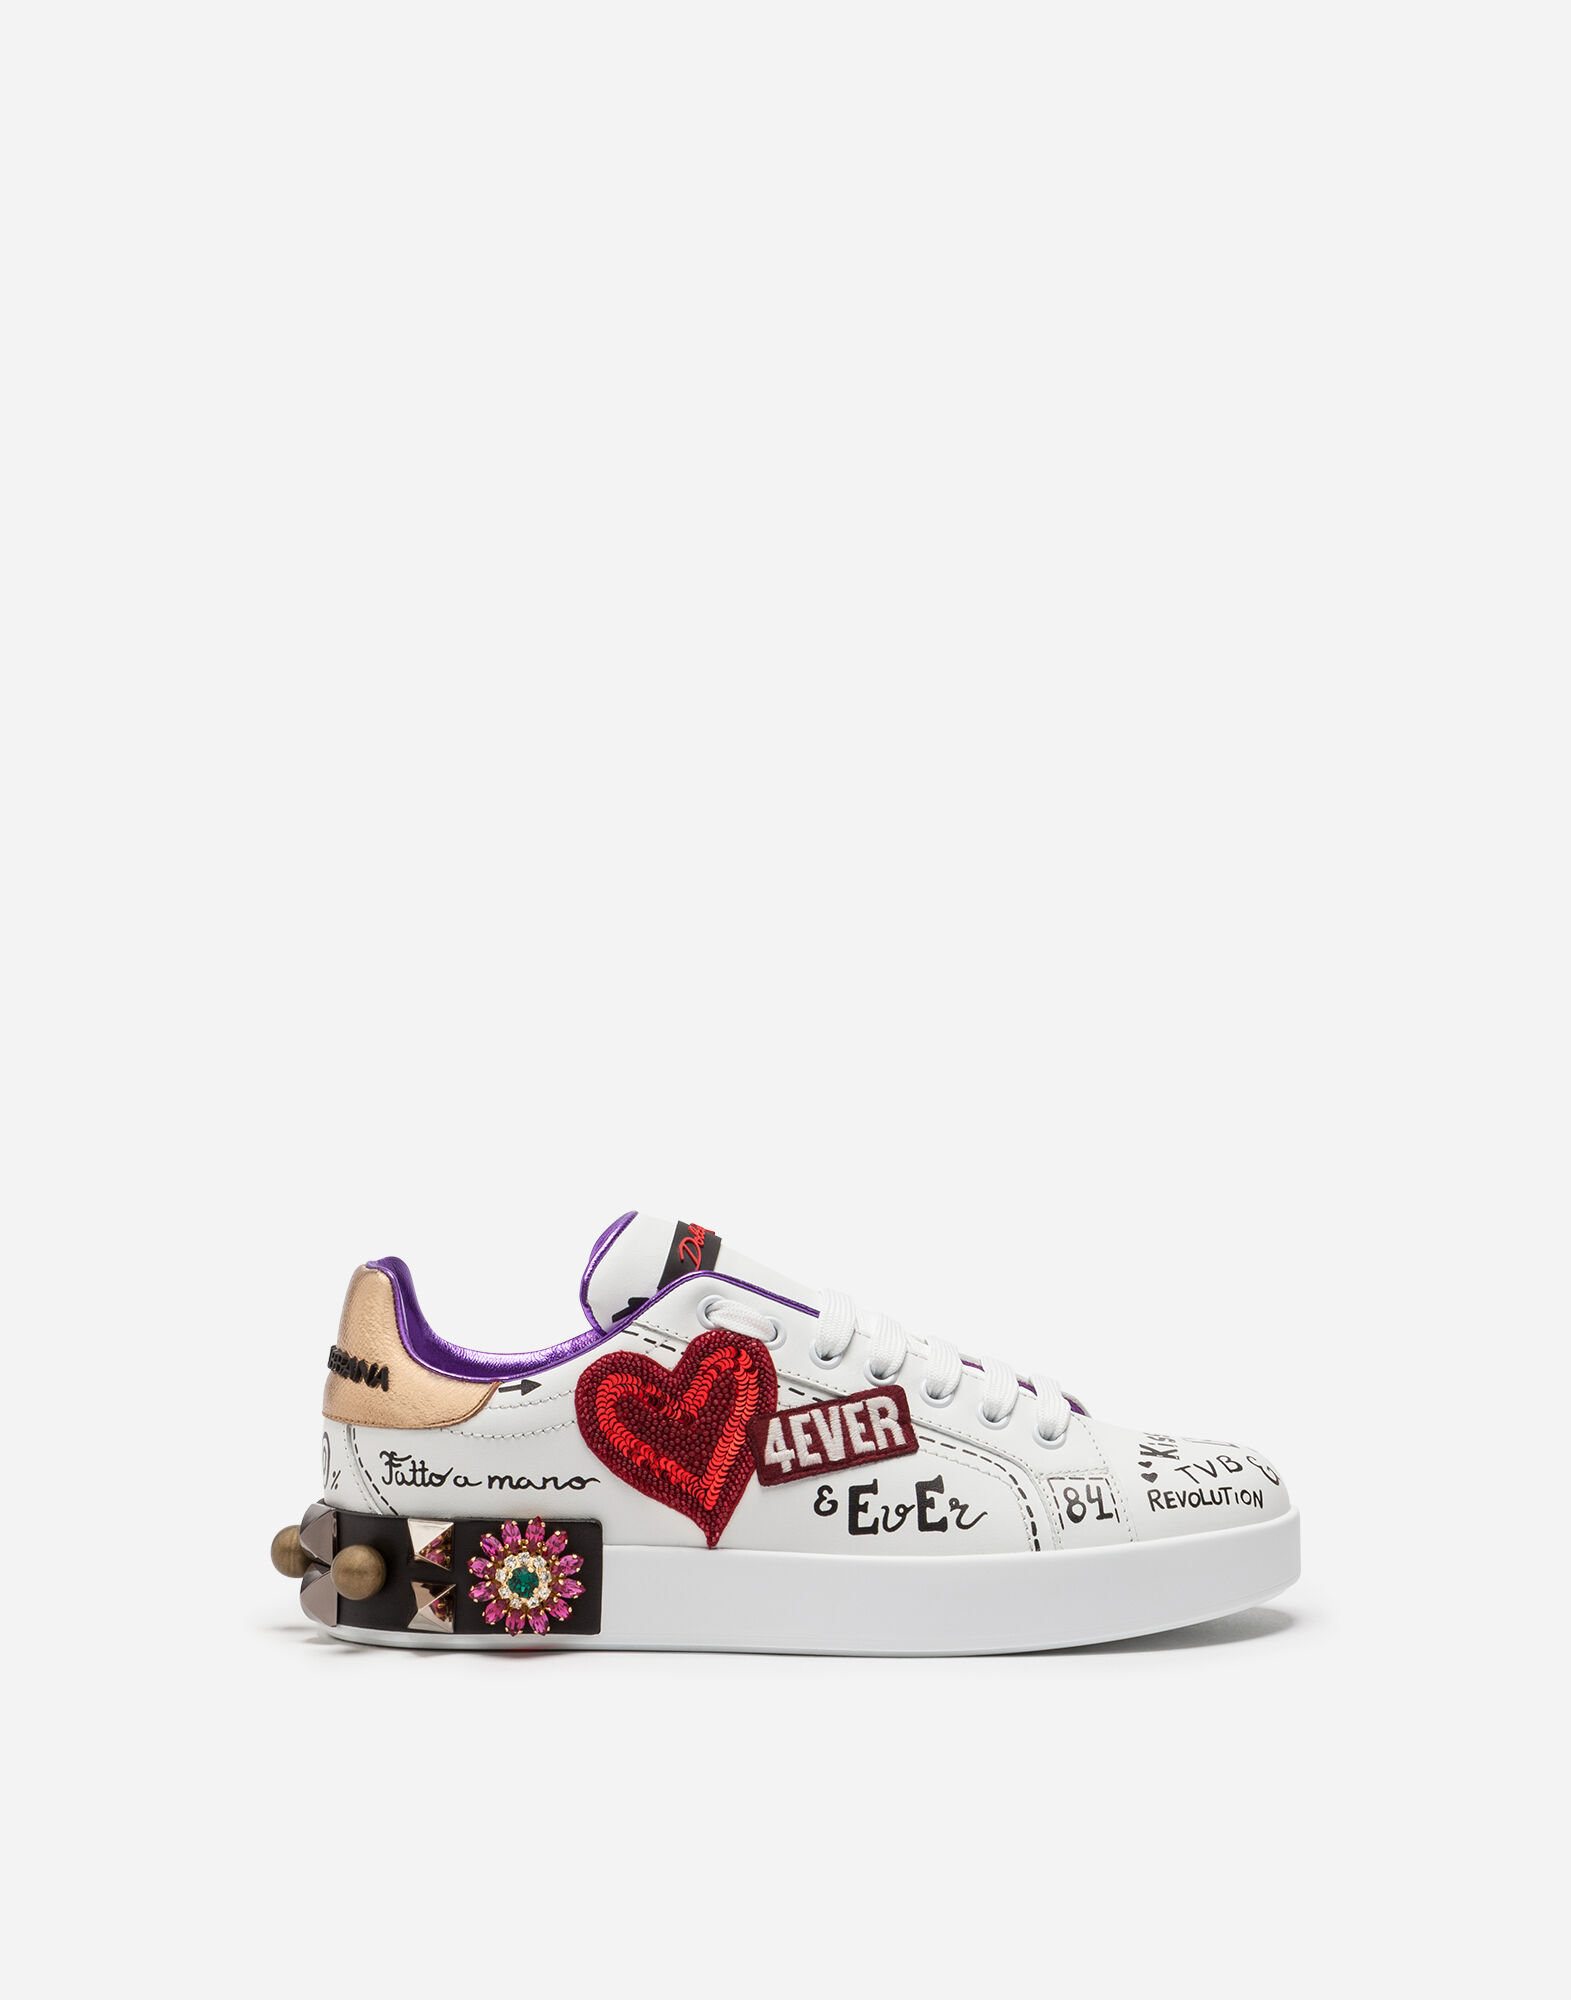 PRINTED CALFSKIN PORTOFINO SNEAKERS WITH PATCH AND EMBROIDERY